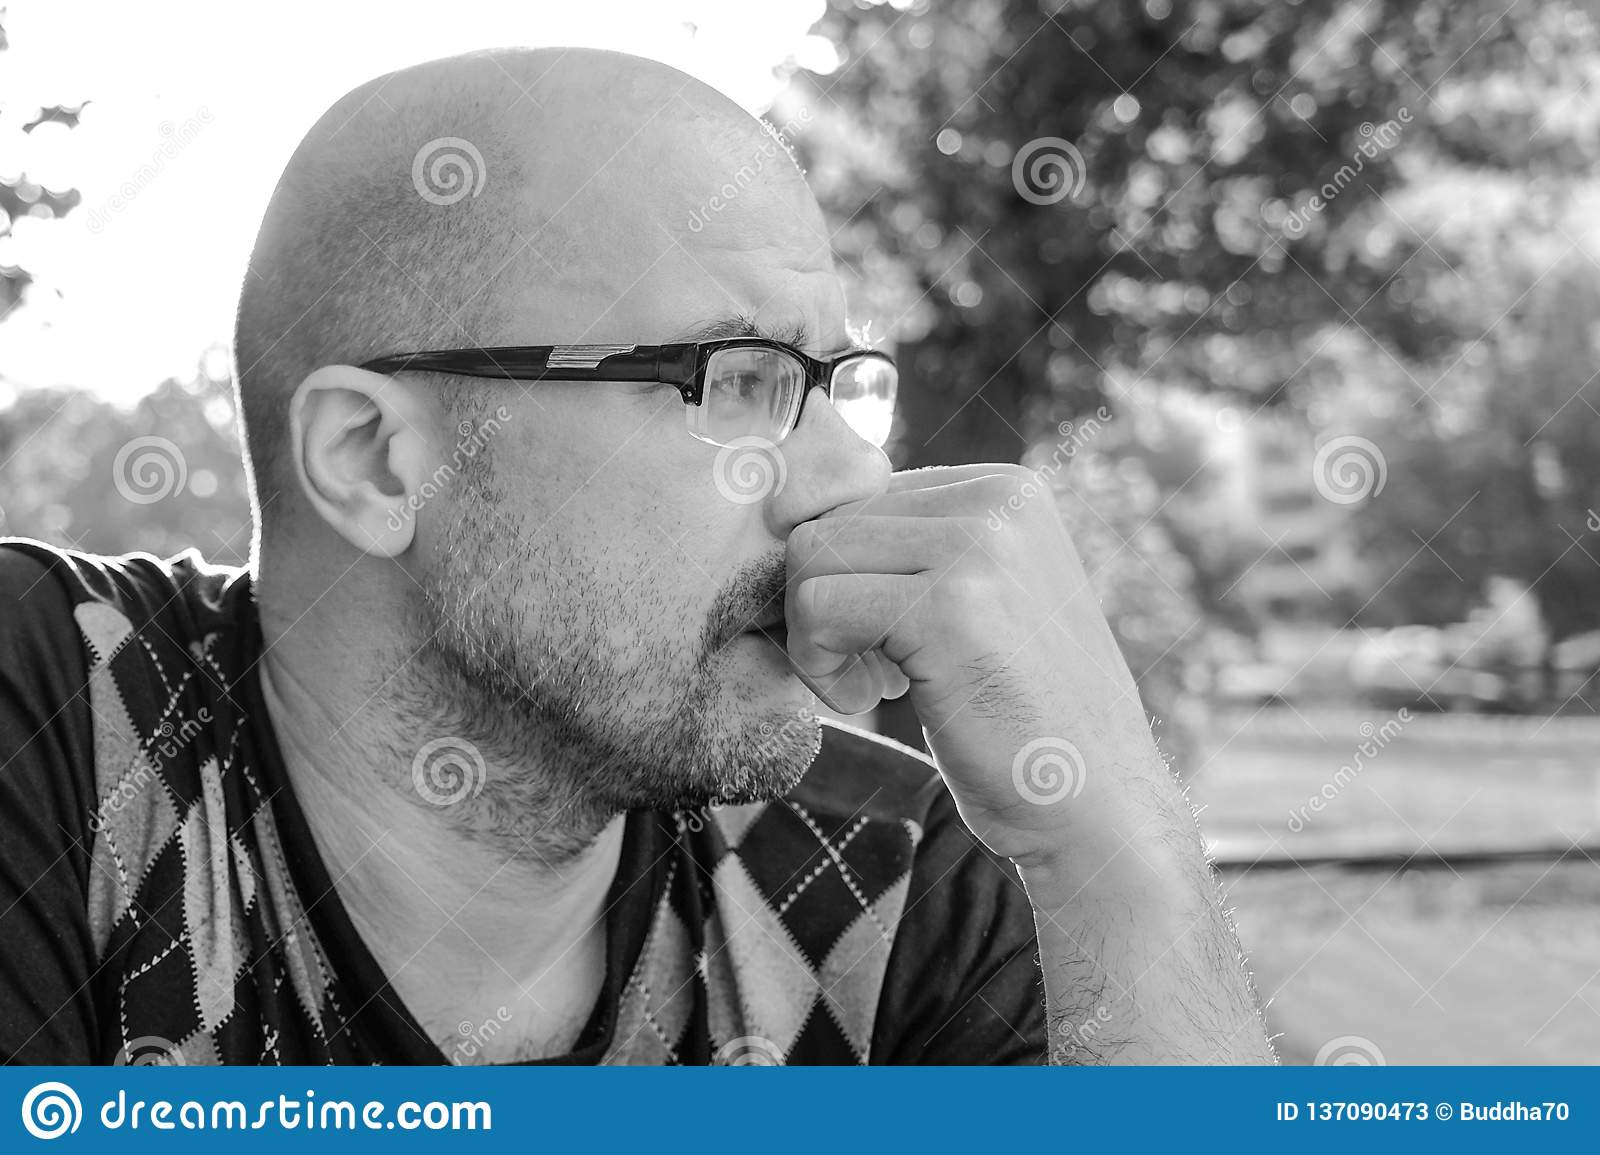 Black and white photo the man with glasses is depressed problems in personal life